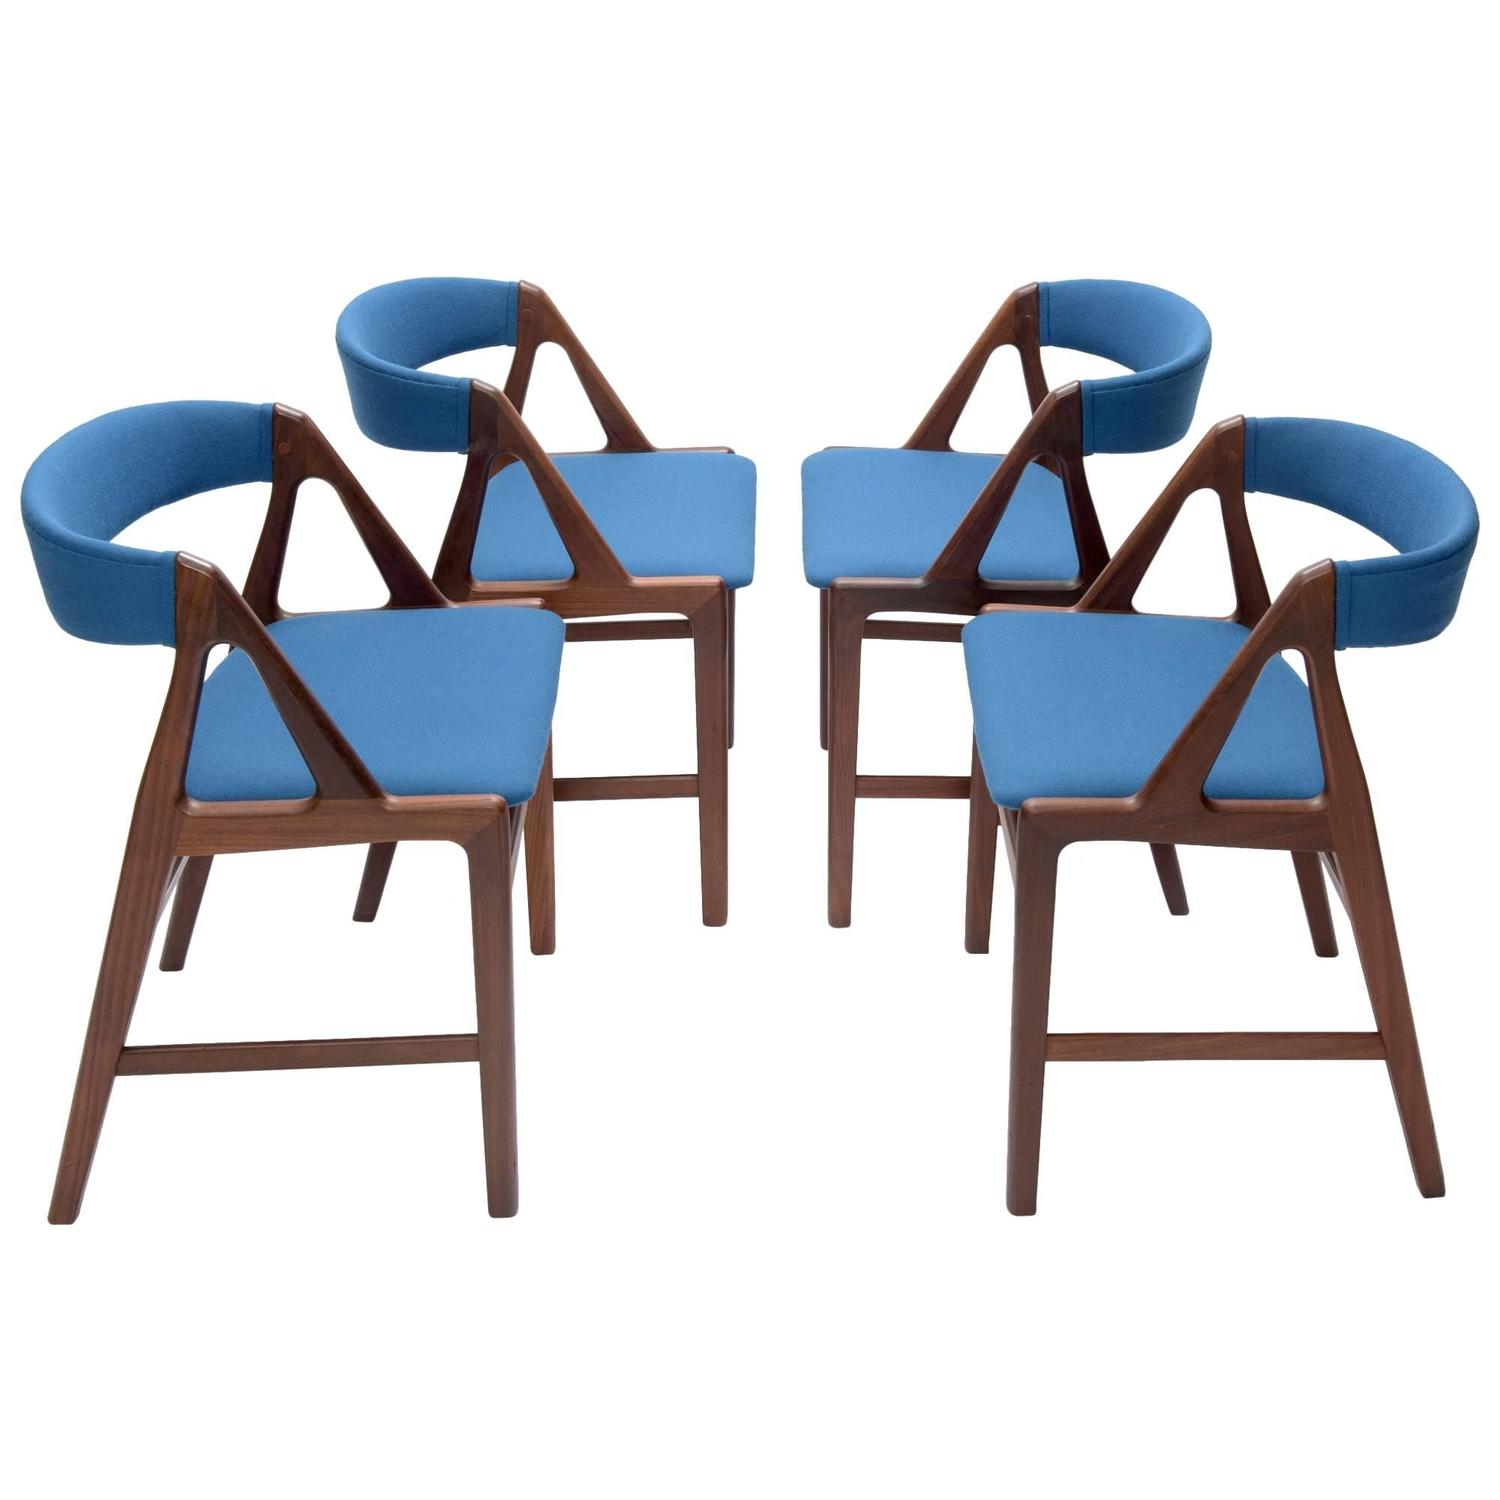 Henning Kj Rnulf Teak Chairs Danish Mid Century Modern Design 1960s At 1stdibs